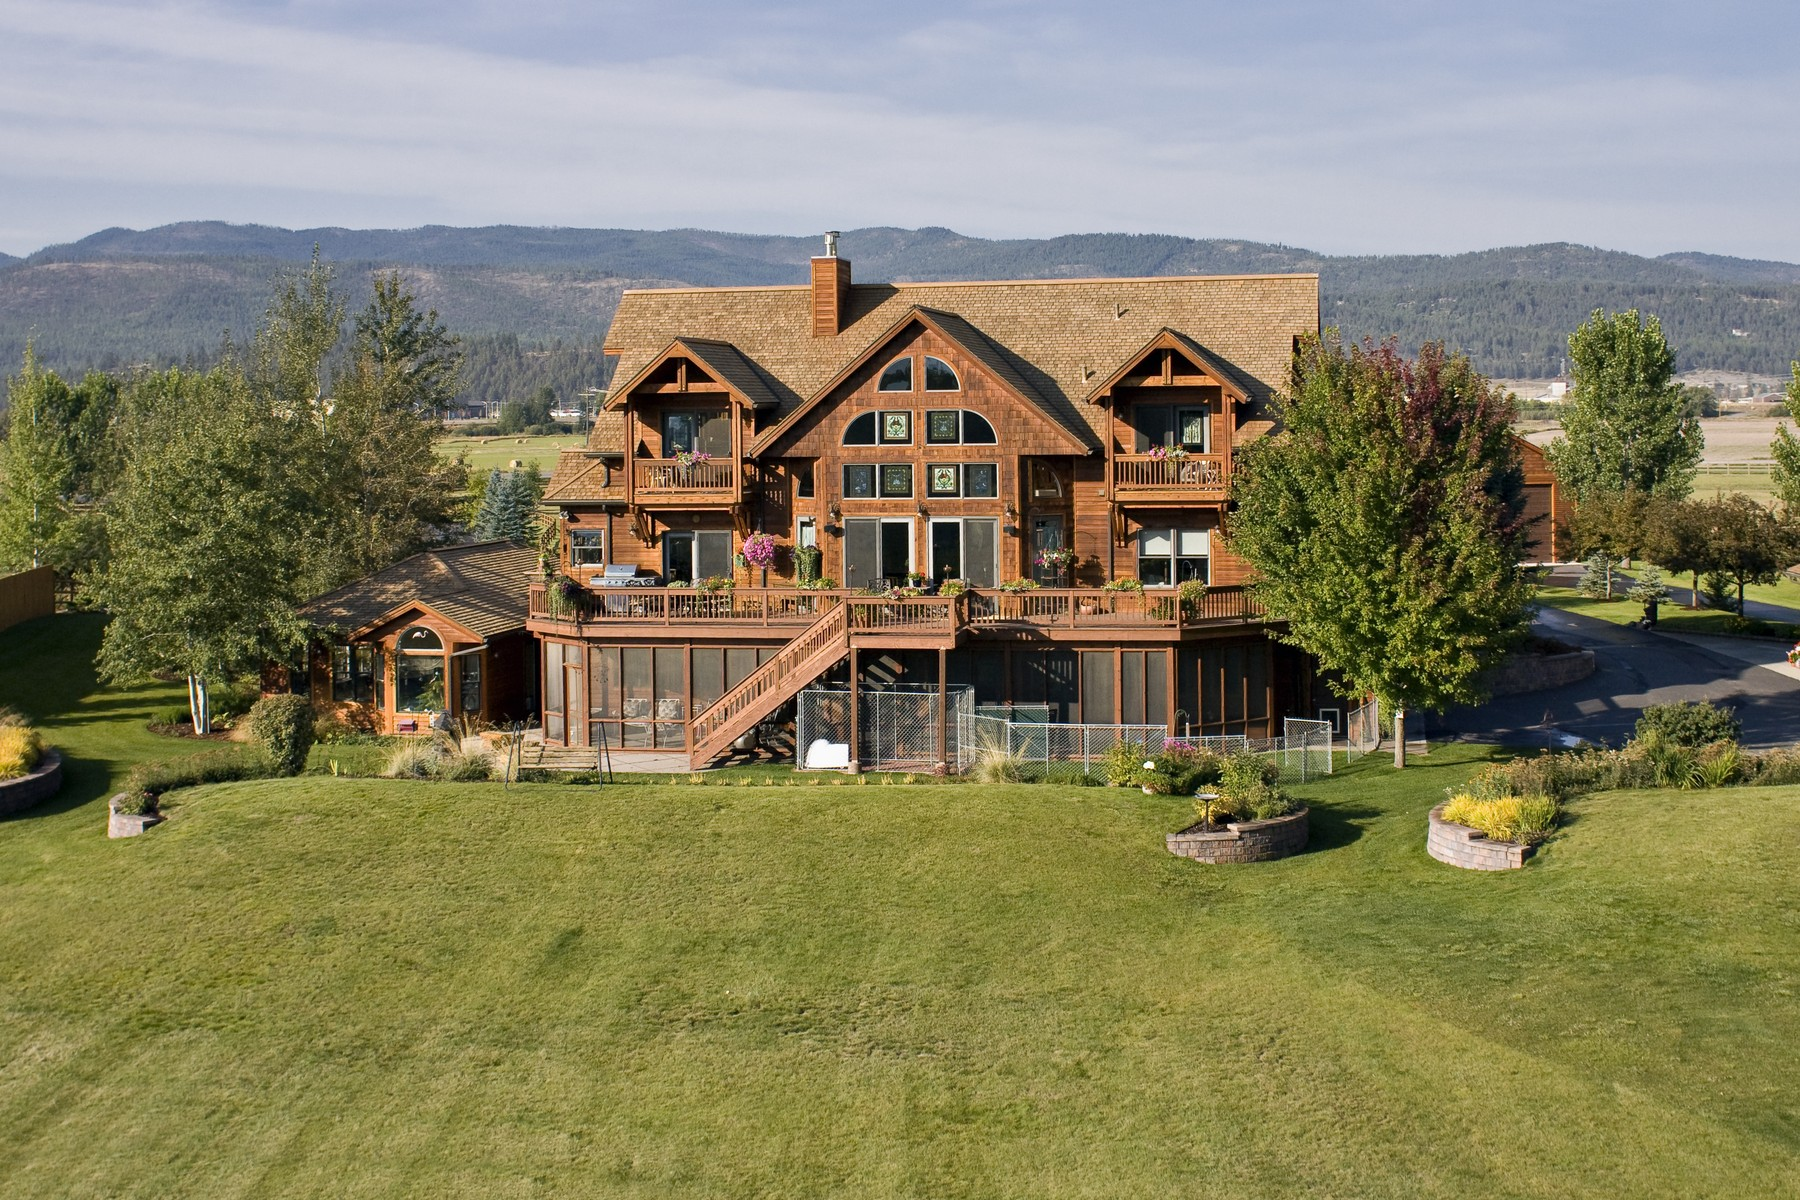 Single Family Home for Sale at Flathead River Home 767 Lower Valley Rd Kalispell, Montana 59901 United States